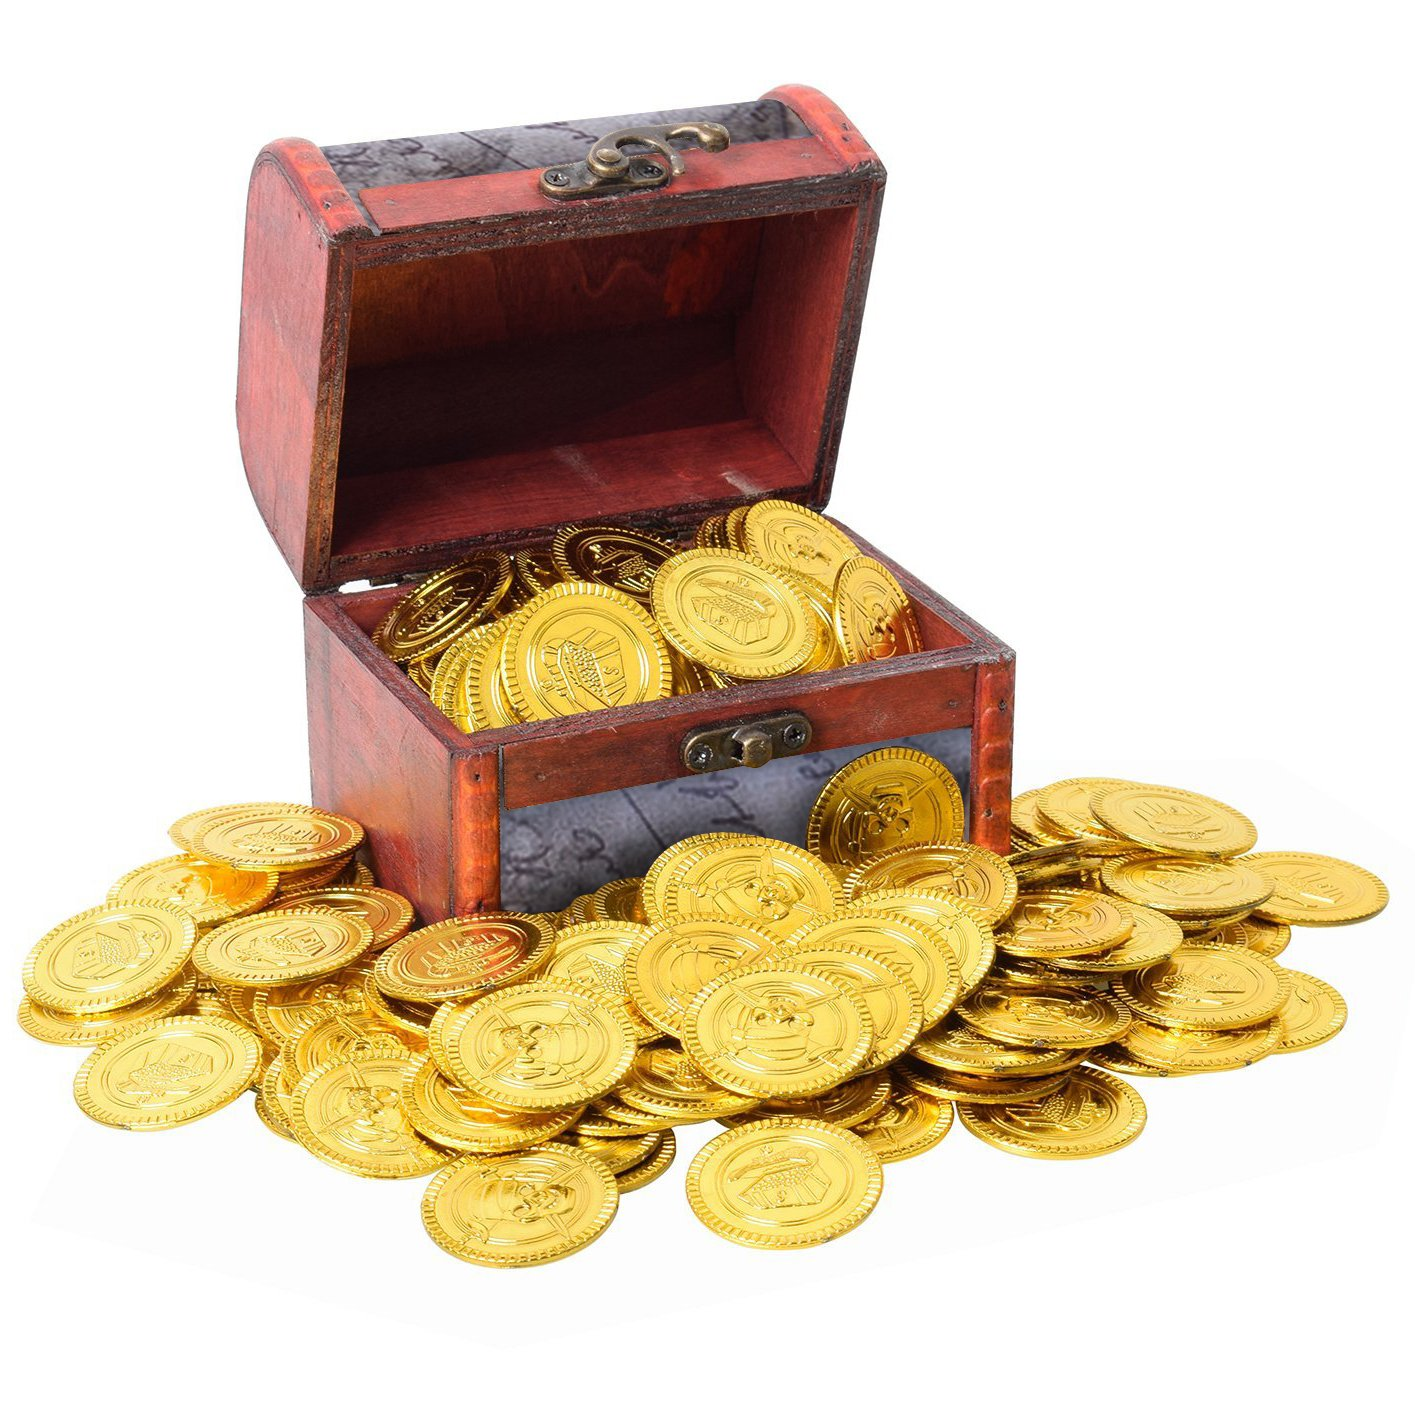 PartyYeah 100 Pcs Pirate Vintage Plastic Fake Gold Coins & Pirate Vintage Treasure Box Chest for Kids Hunt Play Party Favors (Dark Gold, Coins+Box)